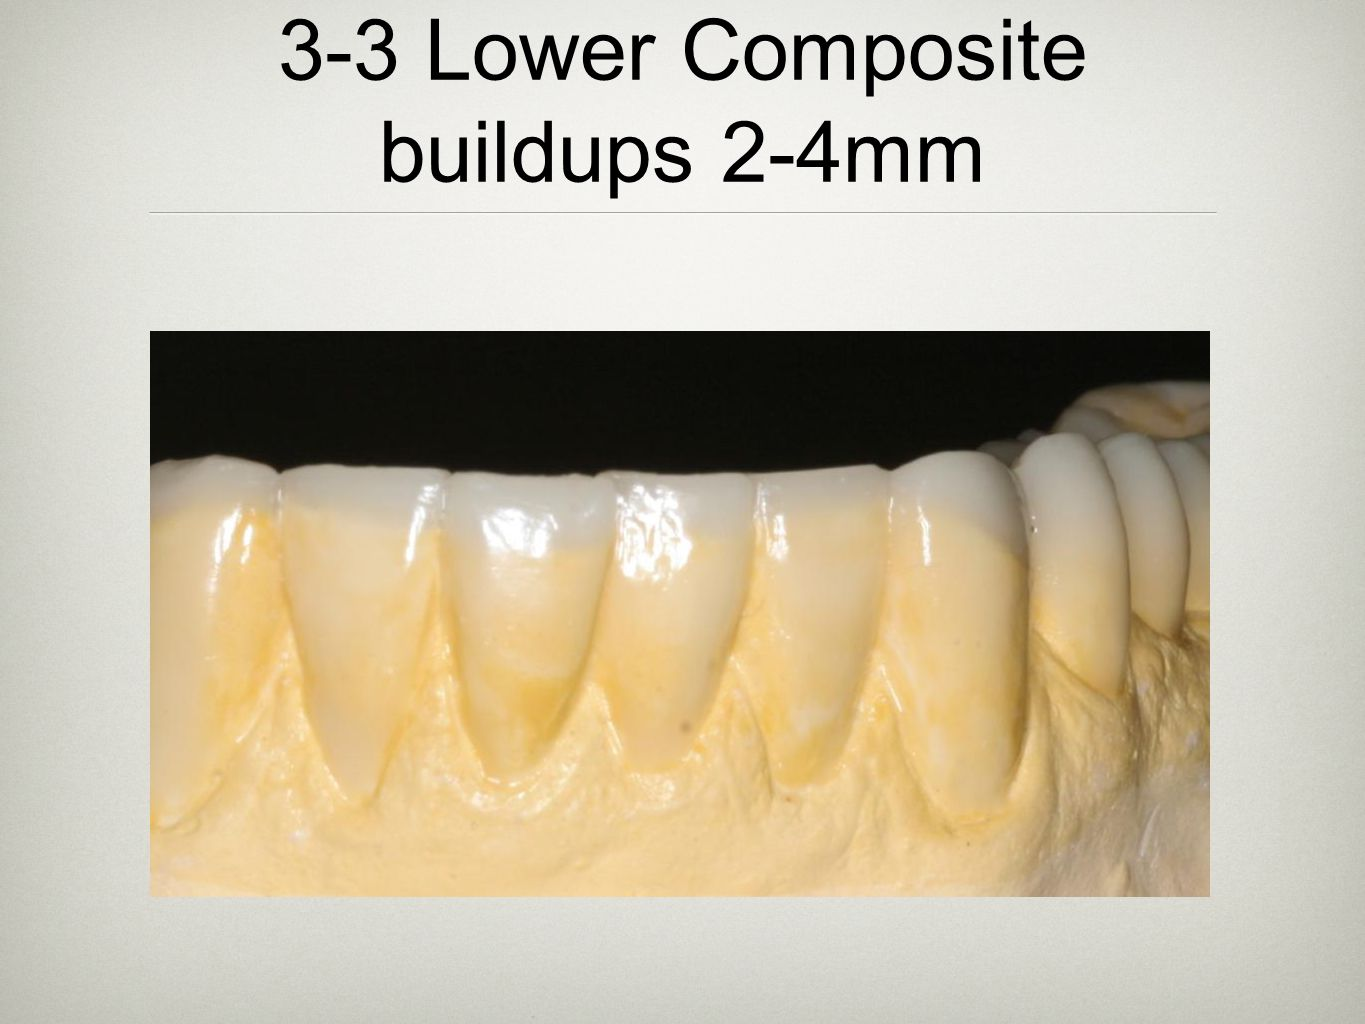 3-3 Lower Composite buildups 2-4mm